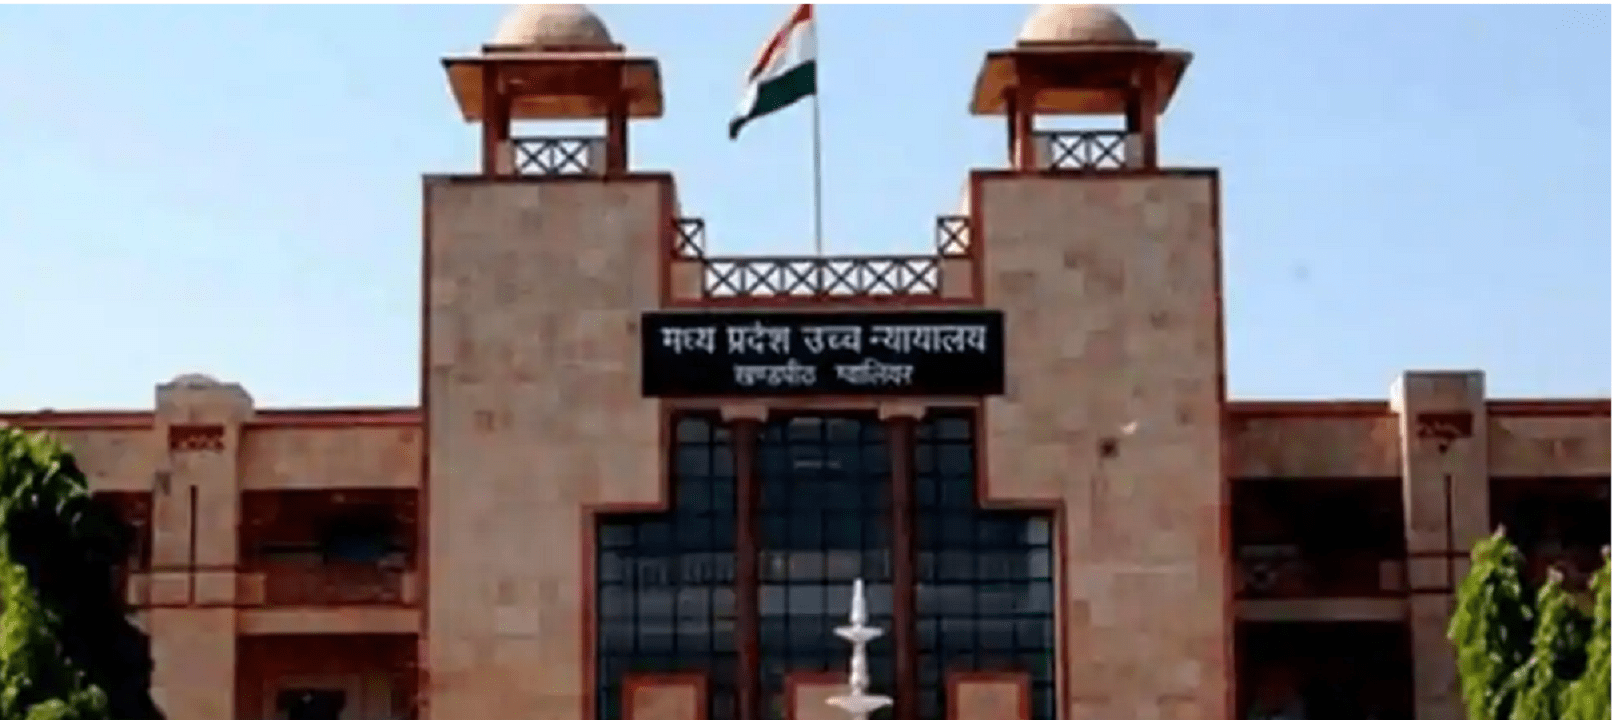 Madhya Pradesh High Court tells Water Resources Department chief engineer to repair canals within 3 months - India Legal